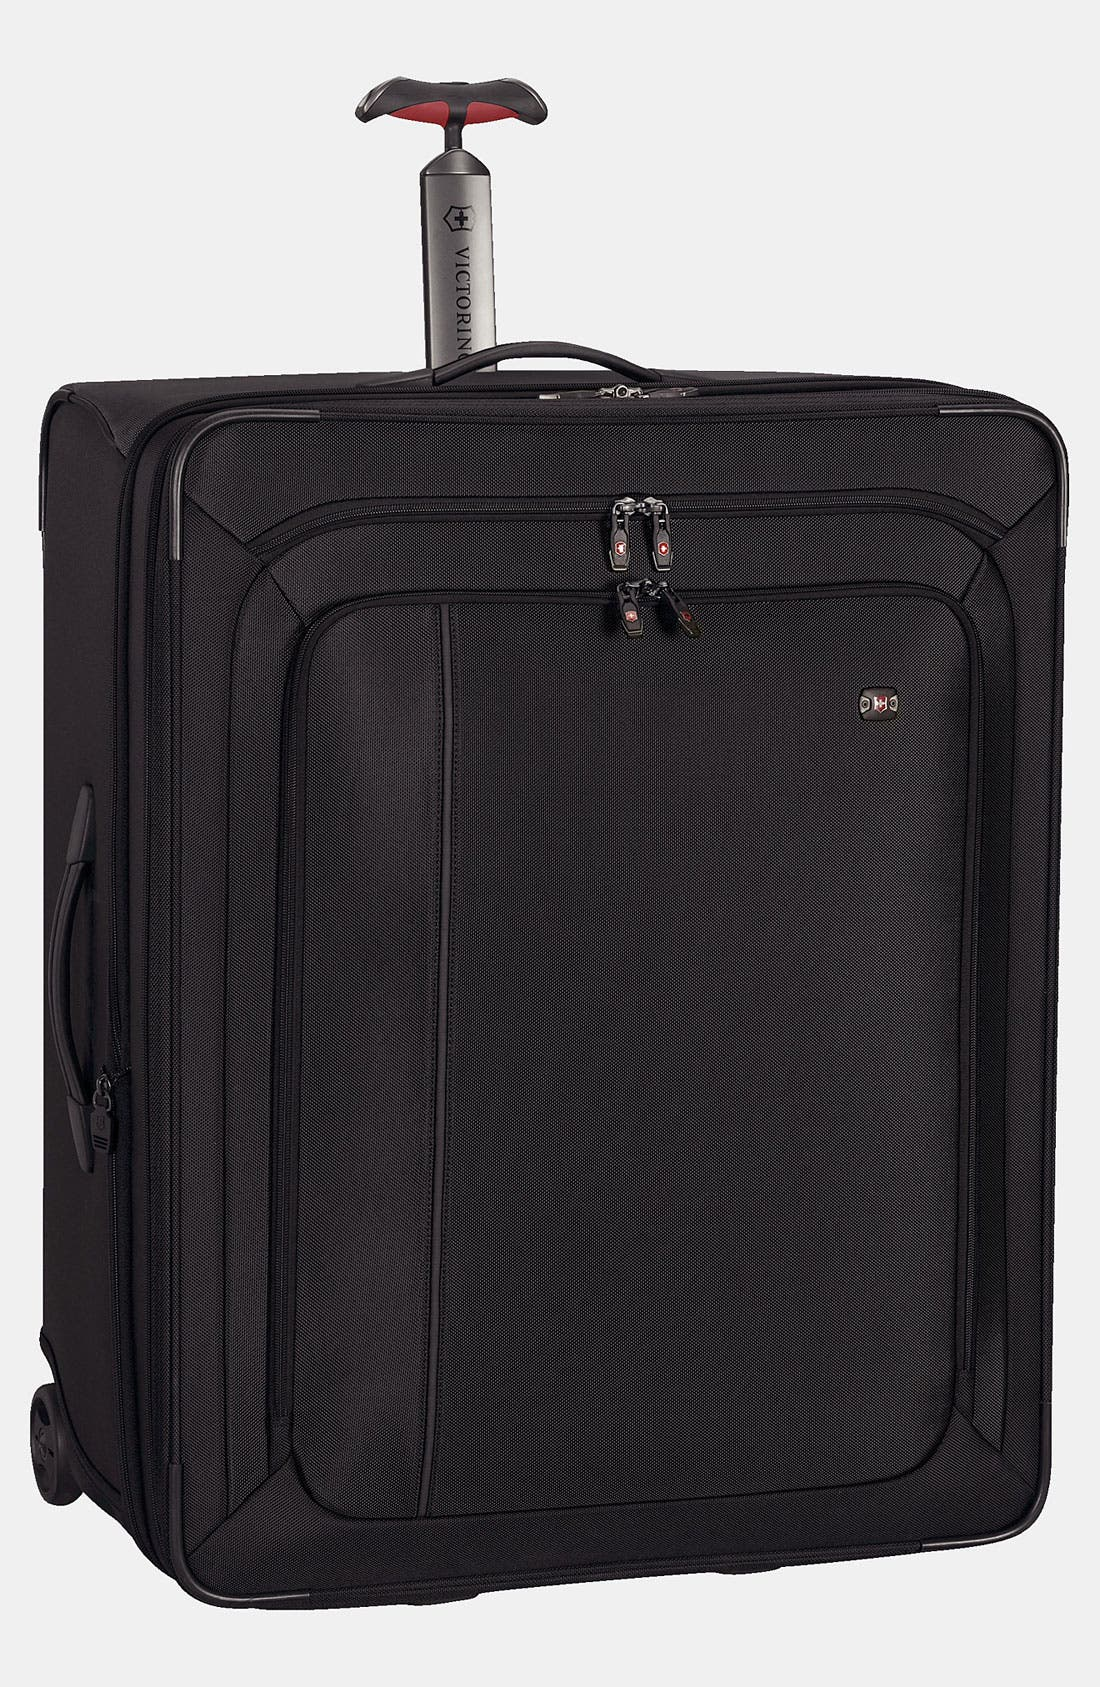 Alternate Image 1 Selected - Victorinox Swiss Army® 'Werks - Traveler' Rolling Packing Case (30 Inch)